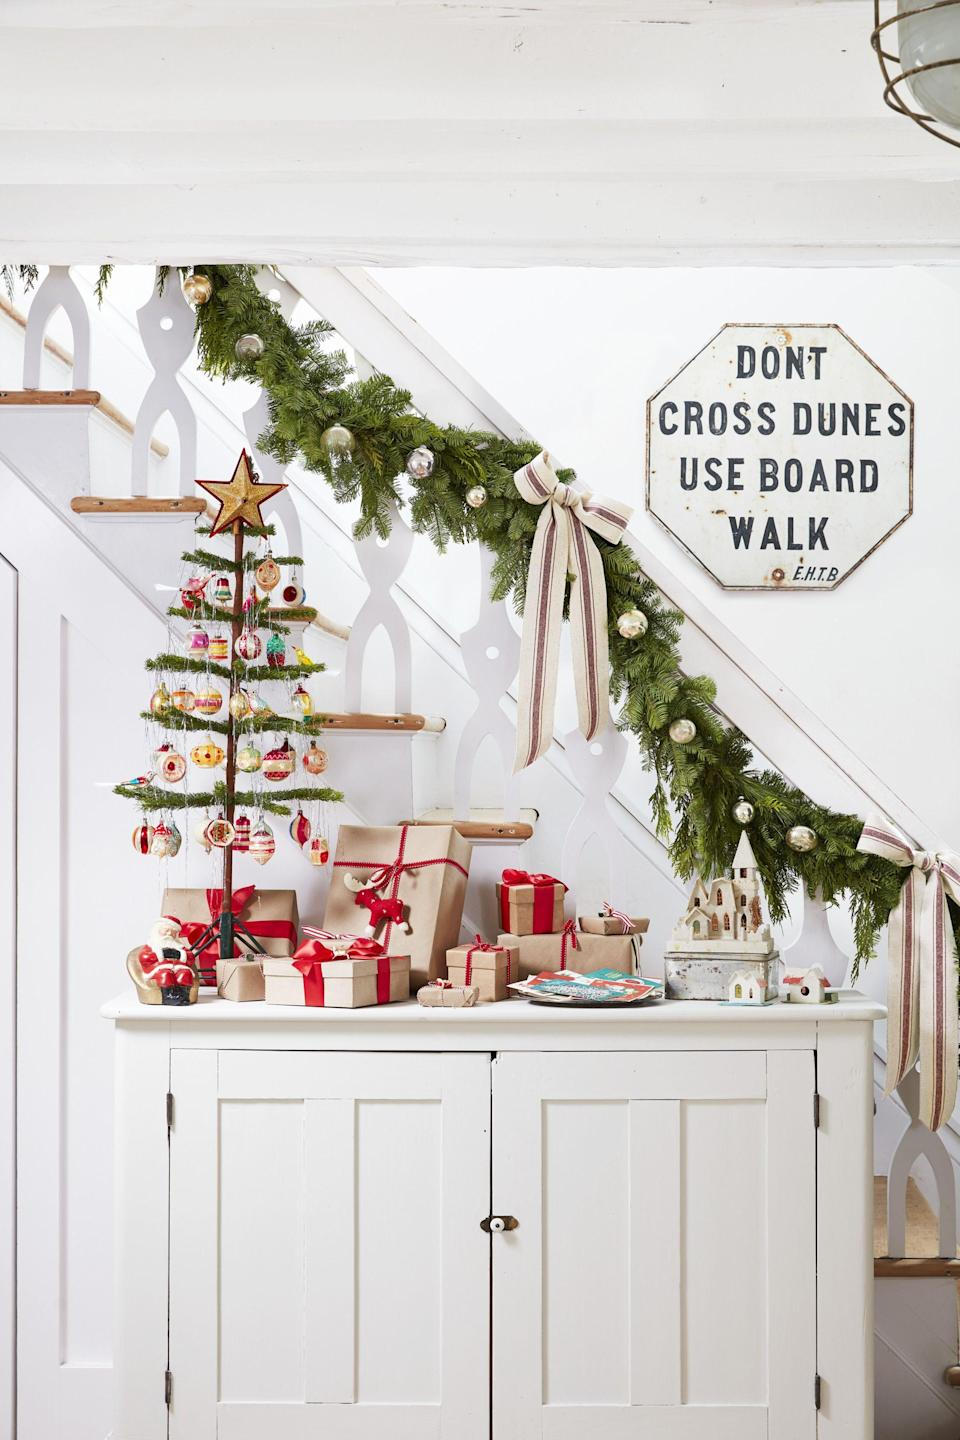 """<p>Have yourself a merry little Christmas by inviting friends old and new over to celebrate the holiday season with these fun and festive Christmas party ideas! We've rounded up some of our favorite ideas to make prepping for parties as fun as throwing them. So, settle in for a day of holiday primping and prepping or movie marathoning. Just don't forget your favorite <a href=""""https://www.countryliving.com/food-drinks/g2087/winter-holiday-drink-recipes/"""" rel=""""nofollow noopener"""" target=""""_blank"""" data-ylk=""""slk:winter drink recipe"""" class=""""link rapid-noclick-resp"""">winter drink recipe</a> and a slice of <a href=""""https://www.countryliving.com/food-drinks/g3610/christmas-fruitcake-recipes/"""" rel=""""nofollow noopener"""" target=""""_blank"""" data-ylk=""""slk:fruitcake"""" class=""""link rapid-noclick-resp"""">fruitcake</a>. </p><p>For those with a crafty holiday spirit, you'll love our crafter-noon parties. From crafting Christmas wreaths to hosting a fun (and helpful) gift-wrapping party, we have enough ideas to last you the entire season—and then some! Relax and make ornaments with your friends (with our favorite DIY Christmas ornament ideas and tutorials to get you started, no less) or kick it old school with a salt dough crafting extravaganza. You can even throw a cookie swap party where guests are invited to bring their favorite cookie and share <a href=""""https://www.countryliving.com/food-drinks/g2777/christmas-sugar-cookies/"""" rel=""""nofollow noopener"""" target=""""_blank"""" data-ylk=""""slk:Christmas cookie recipes"""" class=""""link rapid-noclick-resp"""">Christmas cookie recipes</a>. </p><p>If your friends aren't the crafty type, which we can totally understand in the hustle and bustle of the holiday season, we've got ideas for you too. Throw a fun holiday soiree inspired by your favorite Christmas movie, or go for a <a href=""""https://www.countryliving.com/food-drinks/g635/holiday-recipe-book-1108/"""" rel=""""nofollow noopener"""" target=""""_blank"""" data-ylk=""""slk:classic holiday dinner party"""" class=""""link rapid-noclick-resp"""